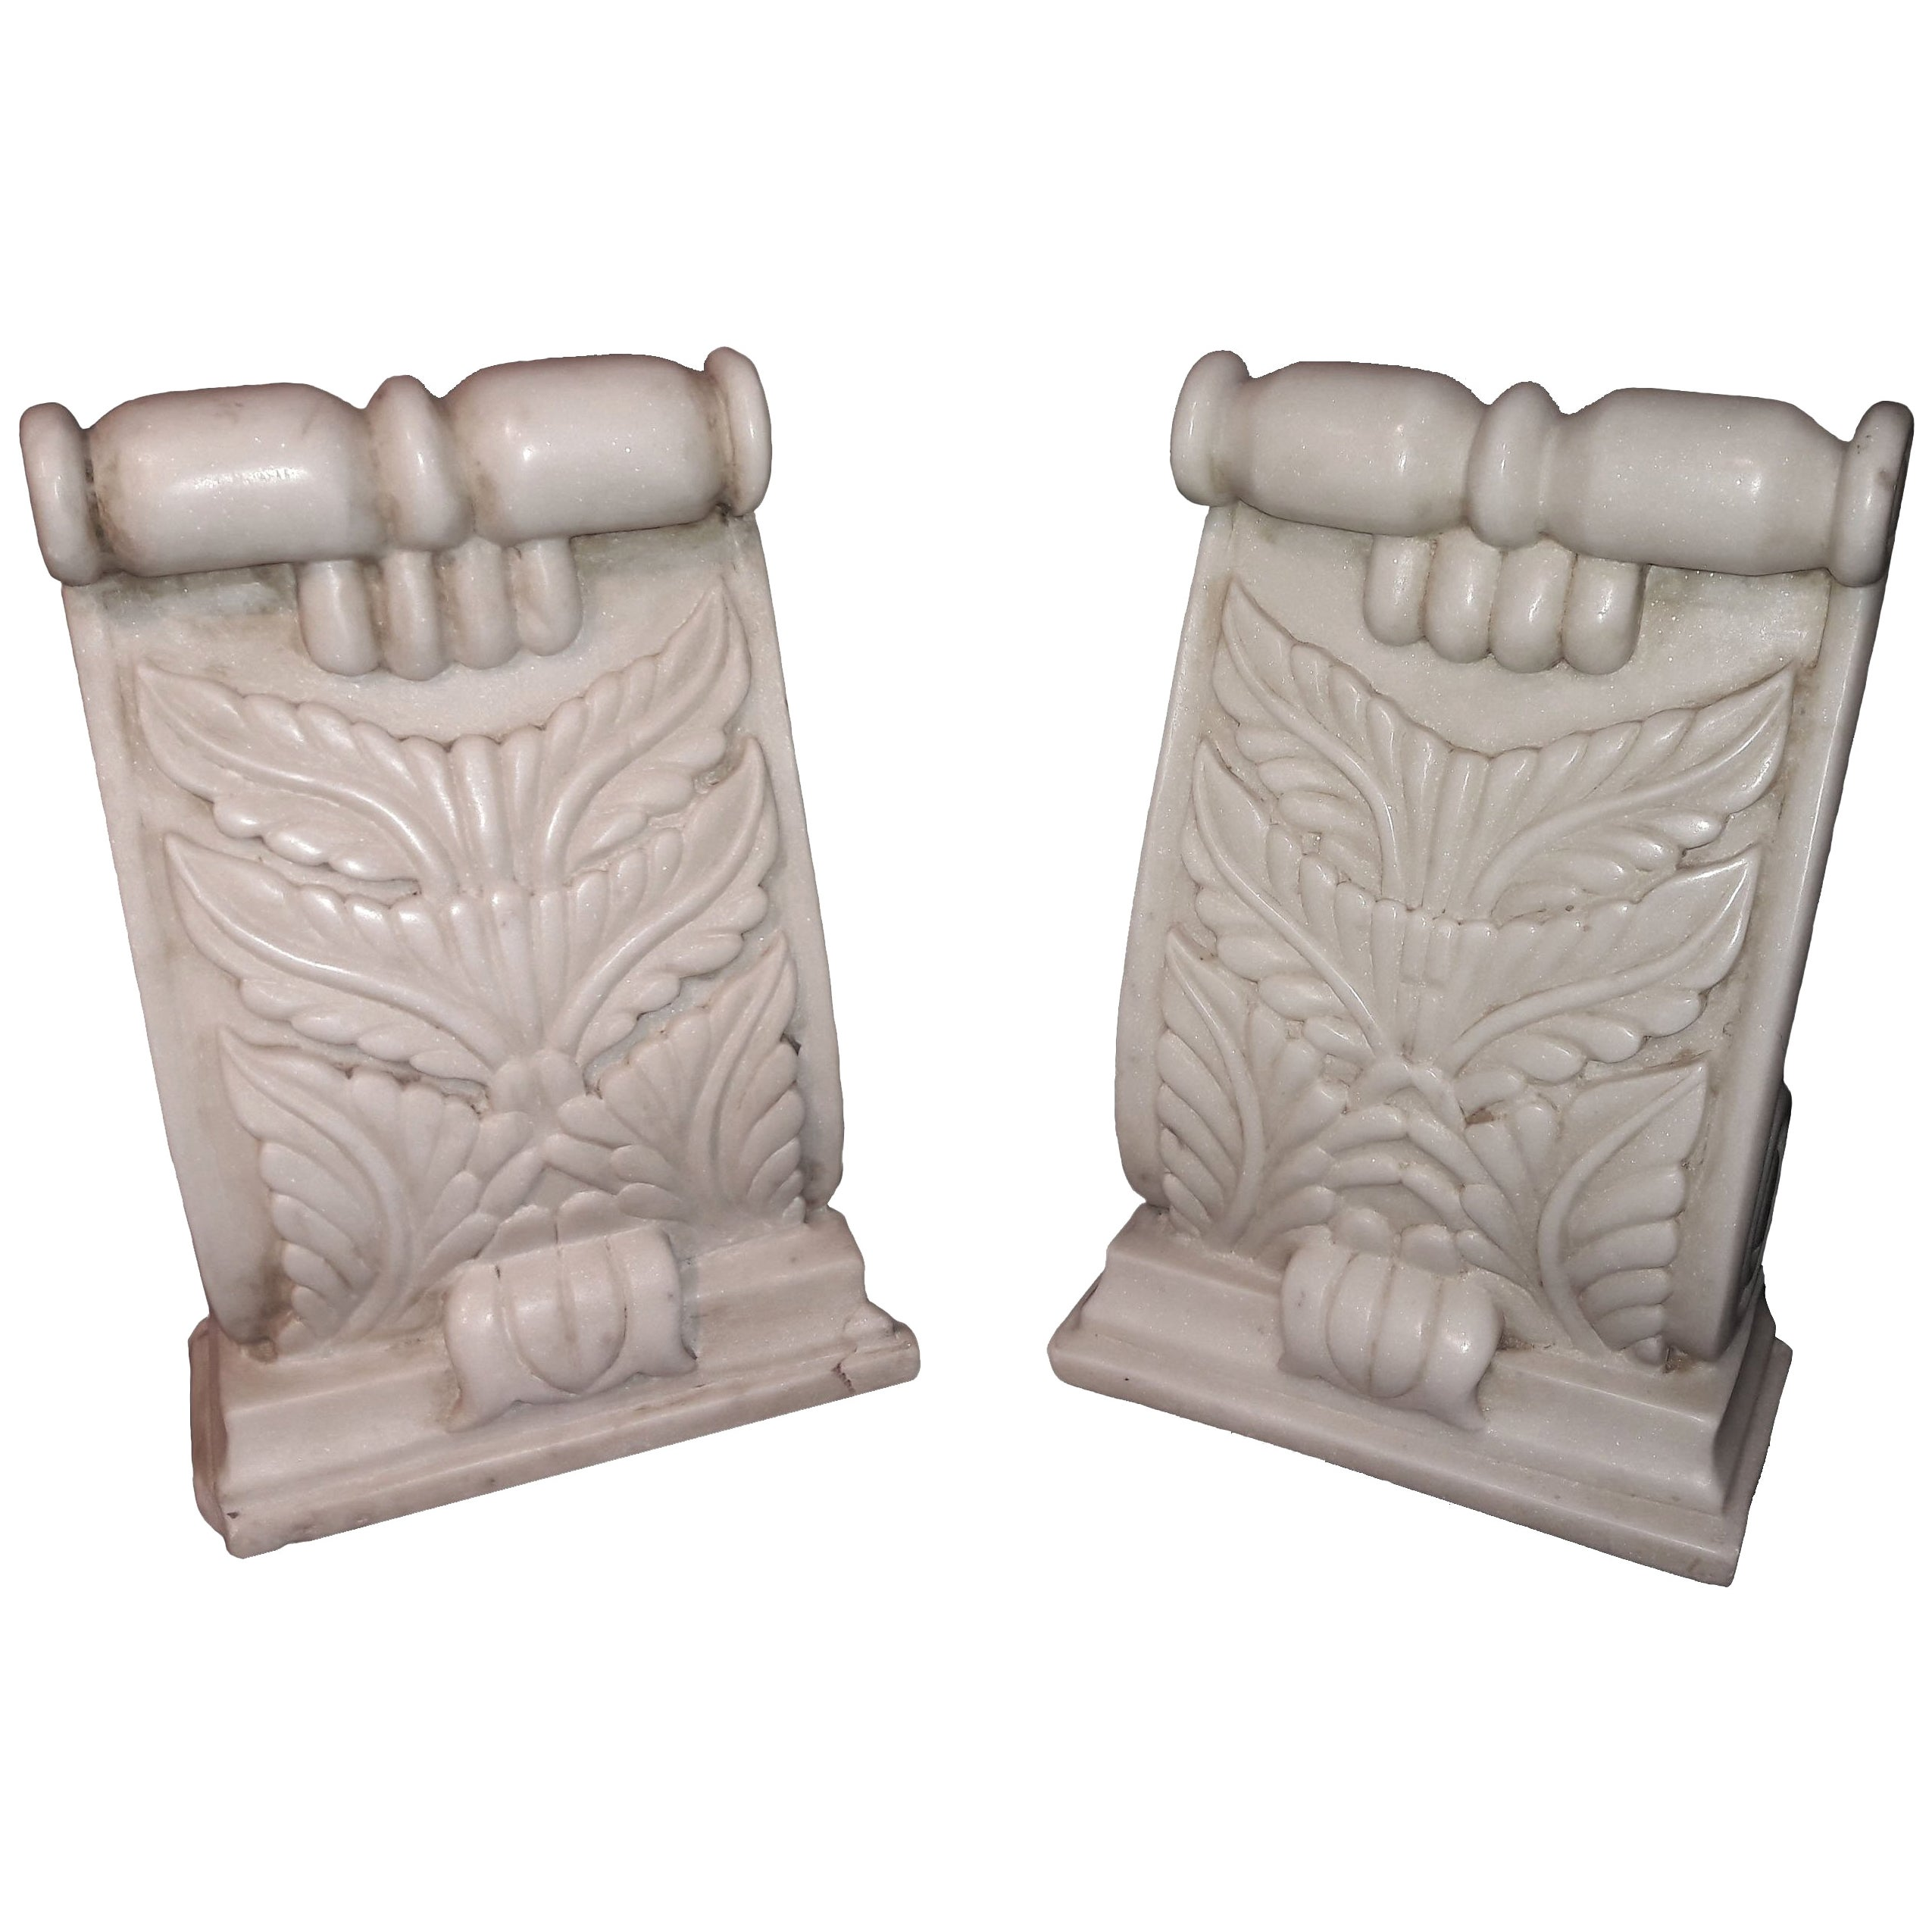 Hand Carved Marble Architectural Details from India, 20th Century